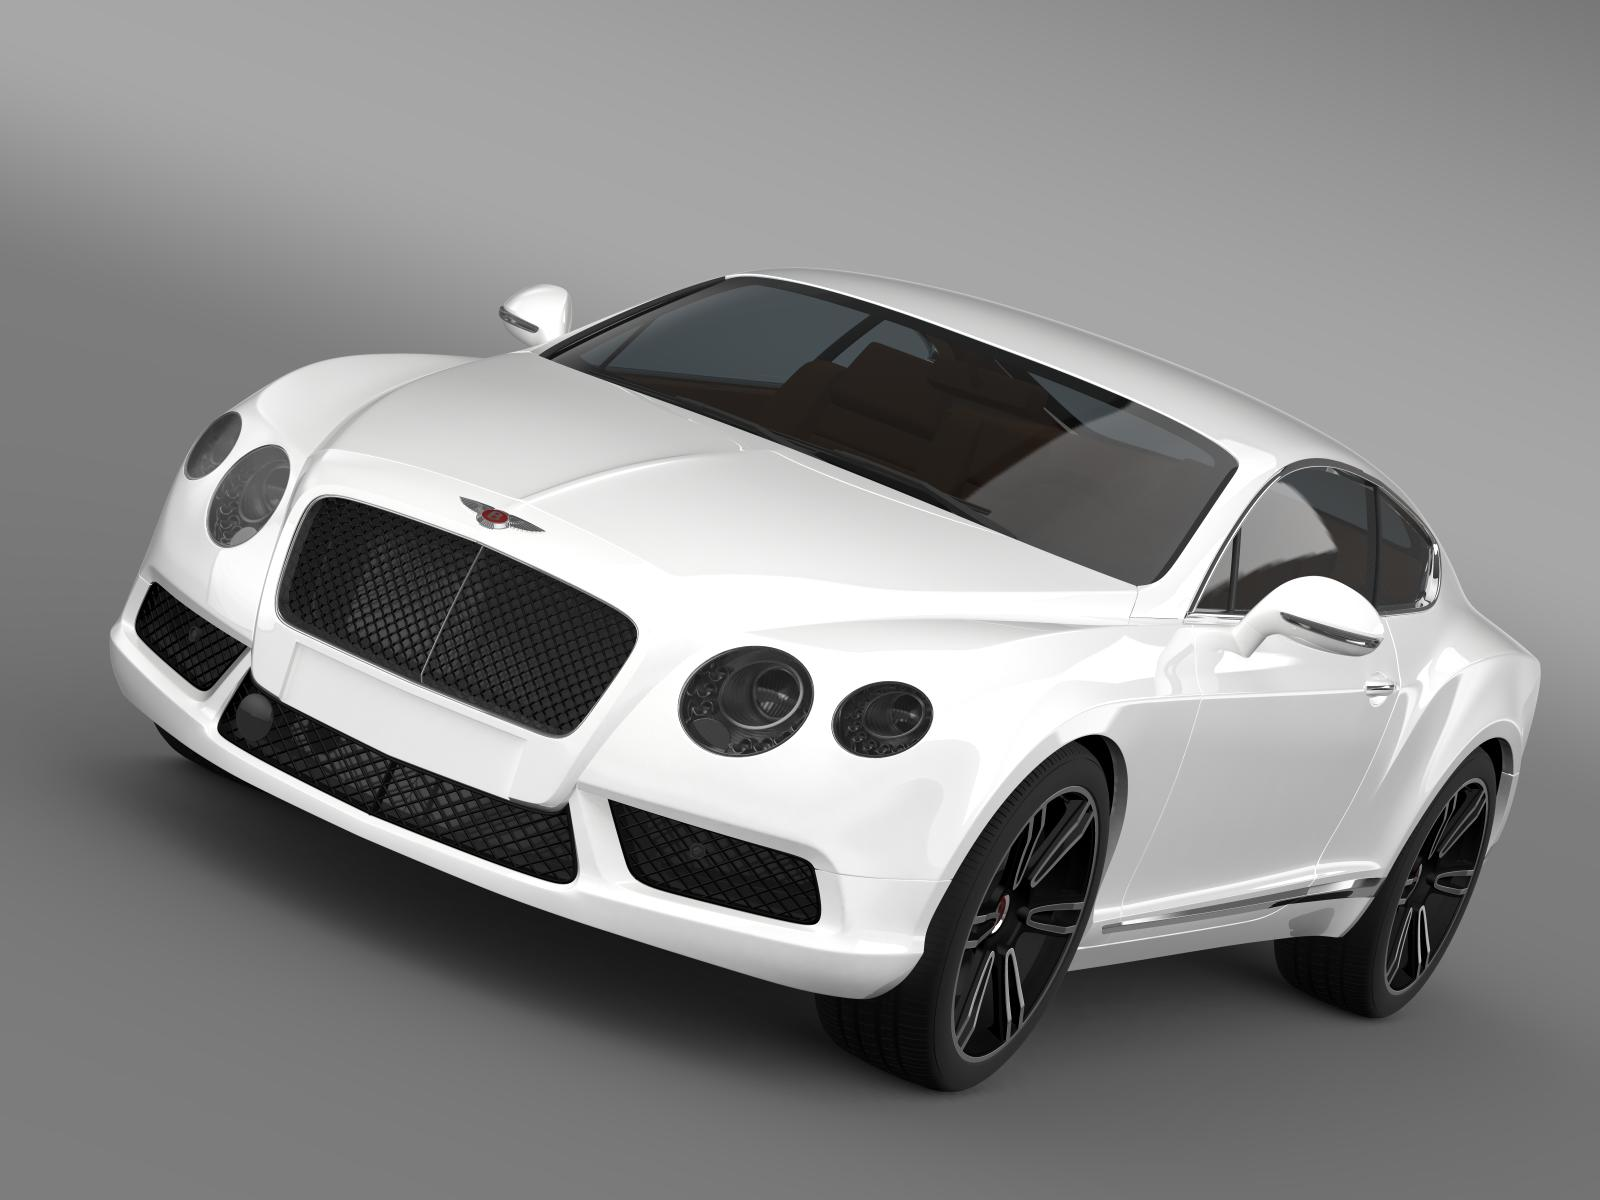 bentley continental gt v8 2013 3d модел 3ds макс. fbx c4d lwo ma mb hrc xsi obj 164015